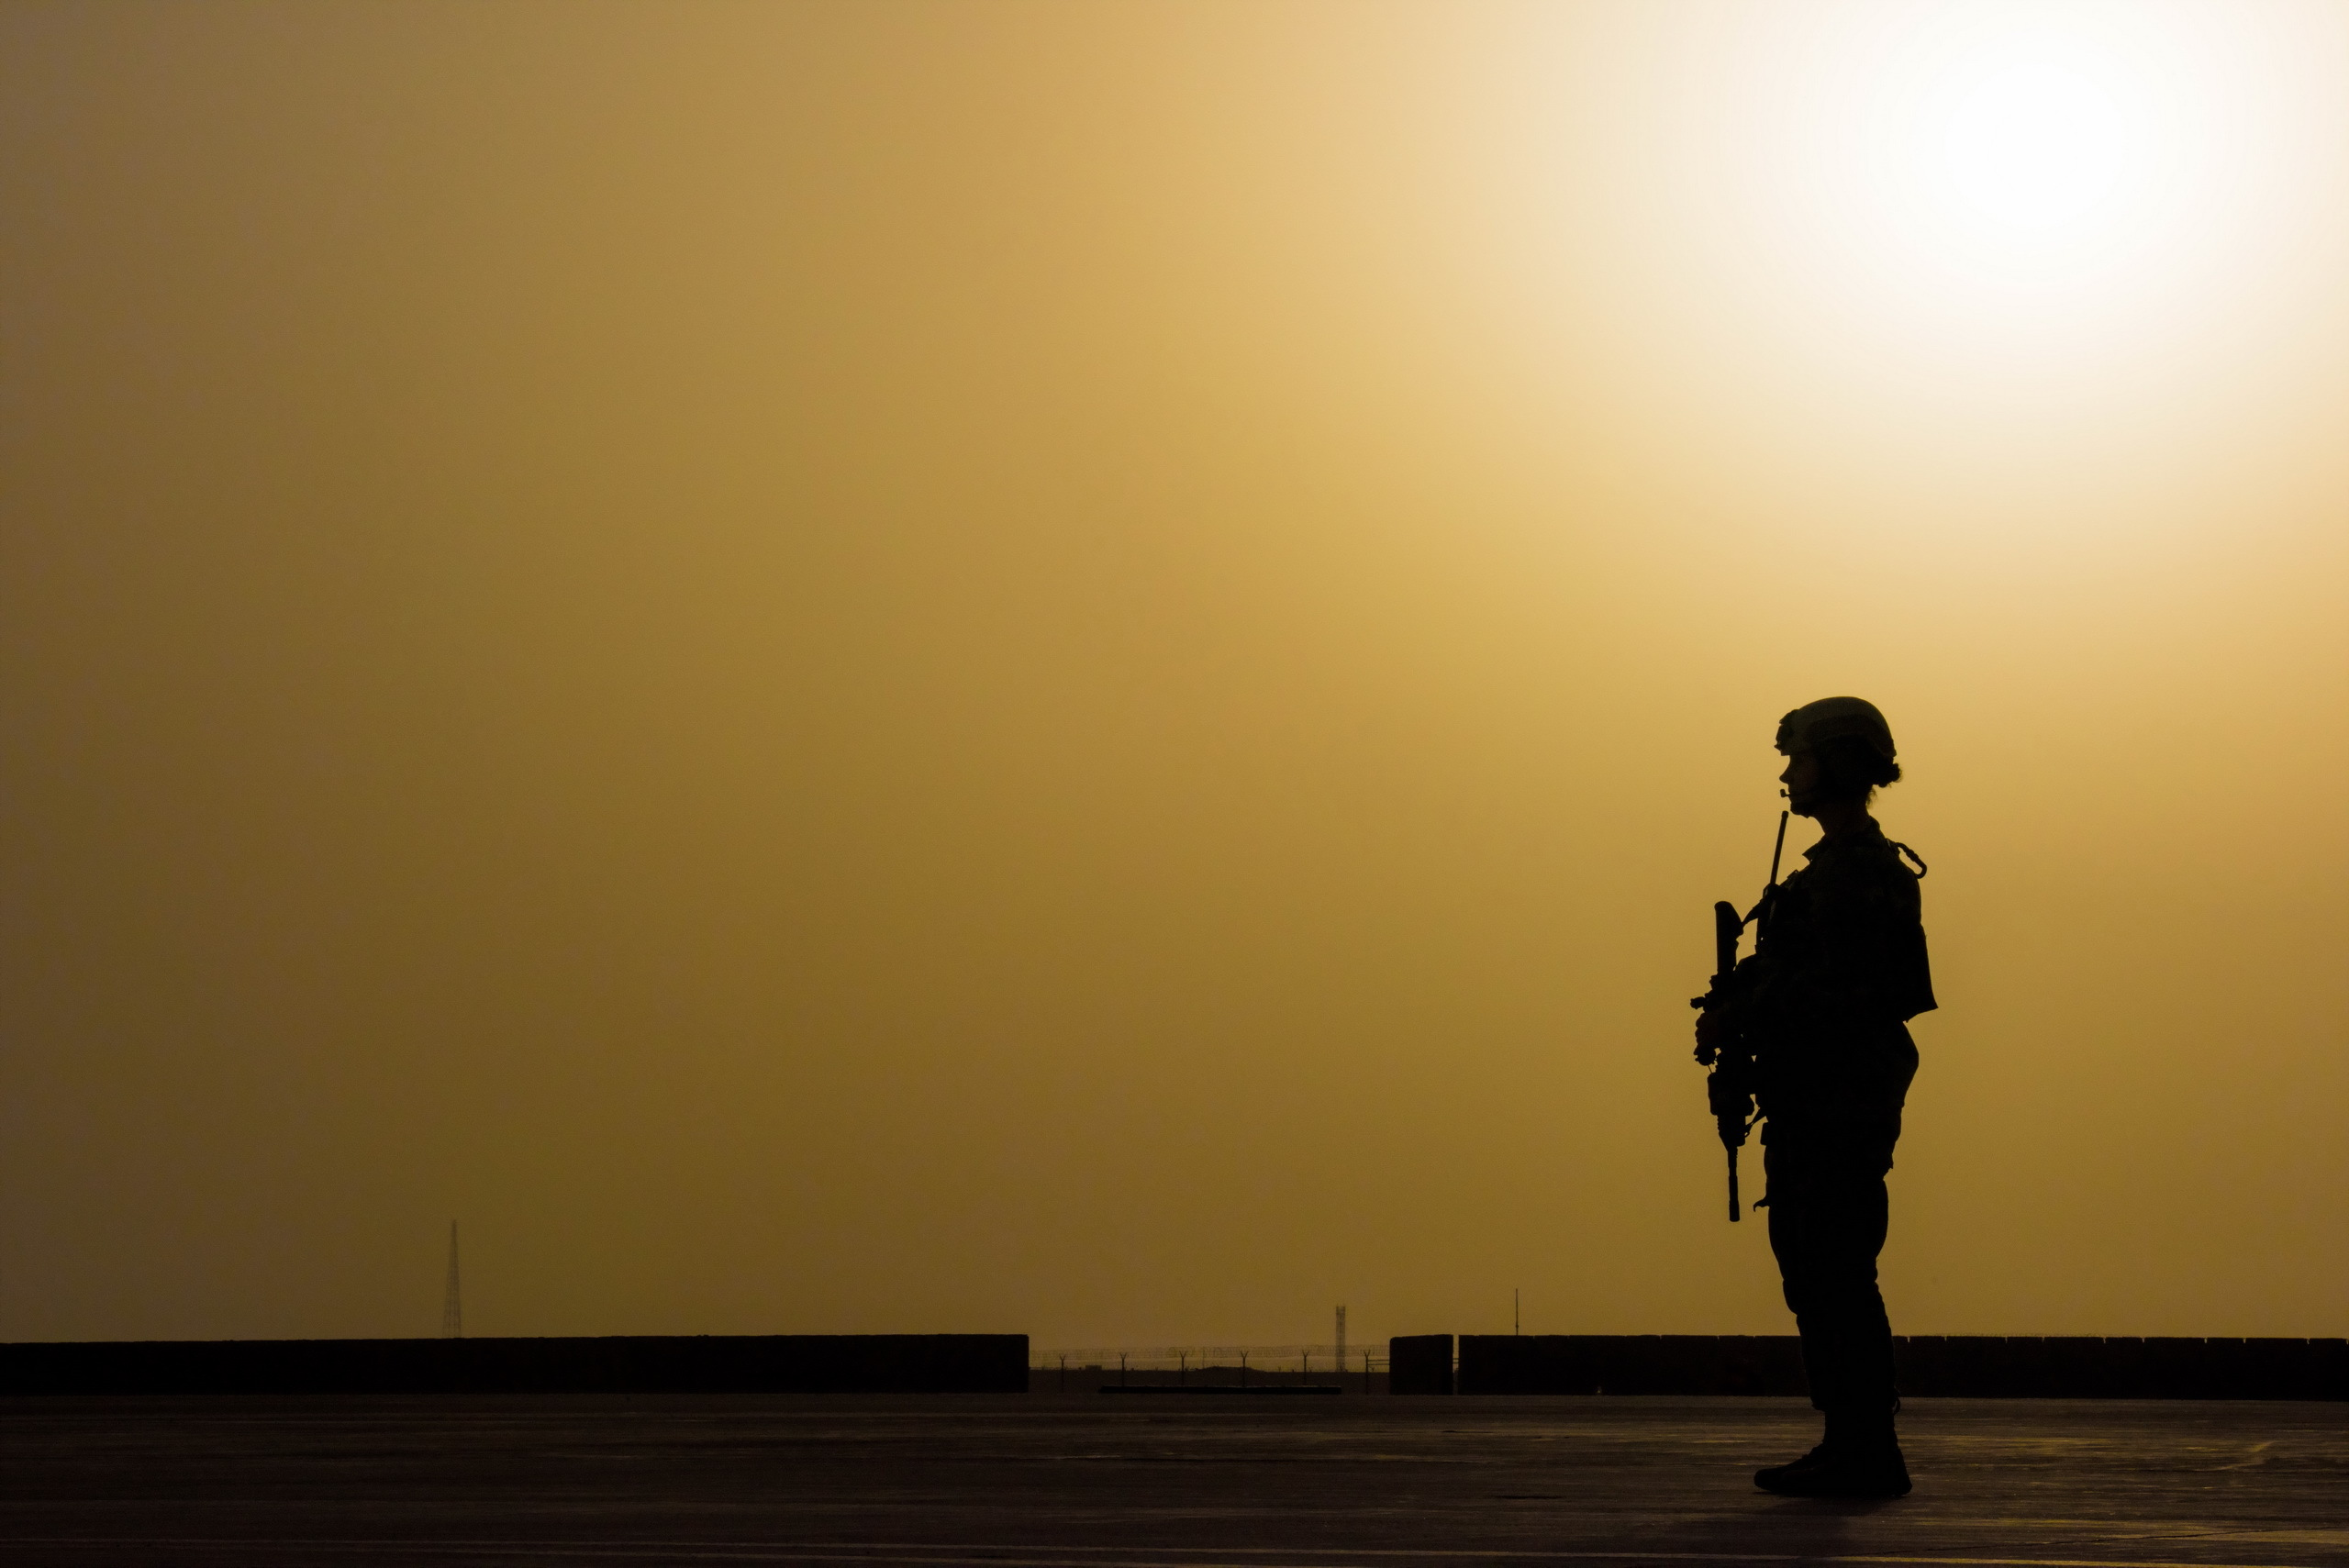 Lone Sentry Hd Wallpaper Background Image 2560x1709 Id687273